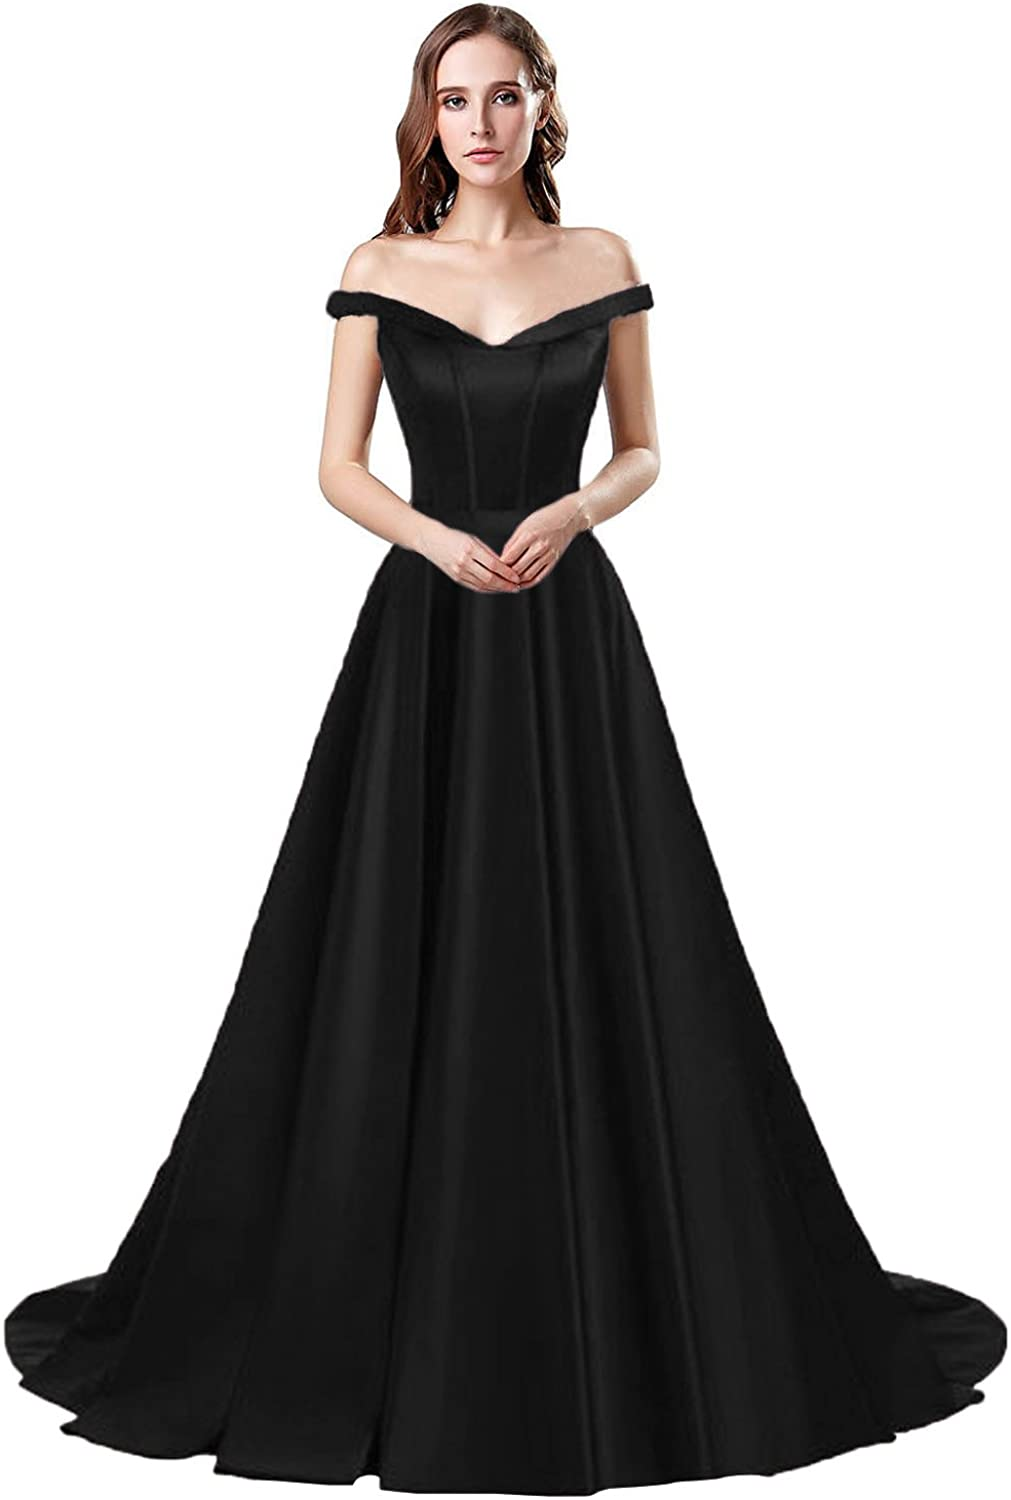 Belle House Women's A Line Prom Dresses Off The Shoulder Long Satin Evening Prom Dress with Pocket